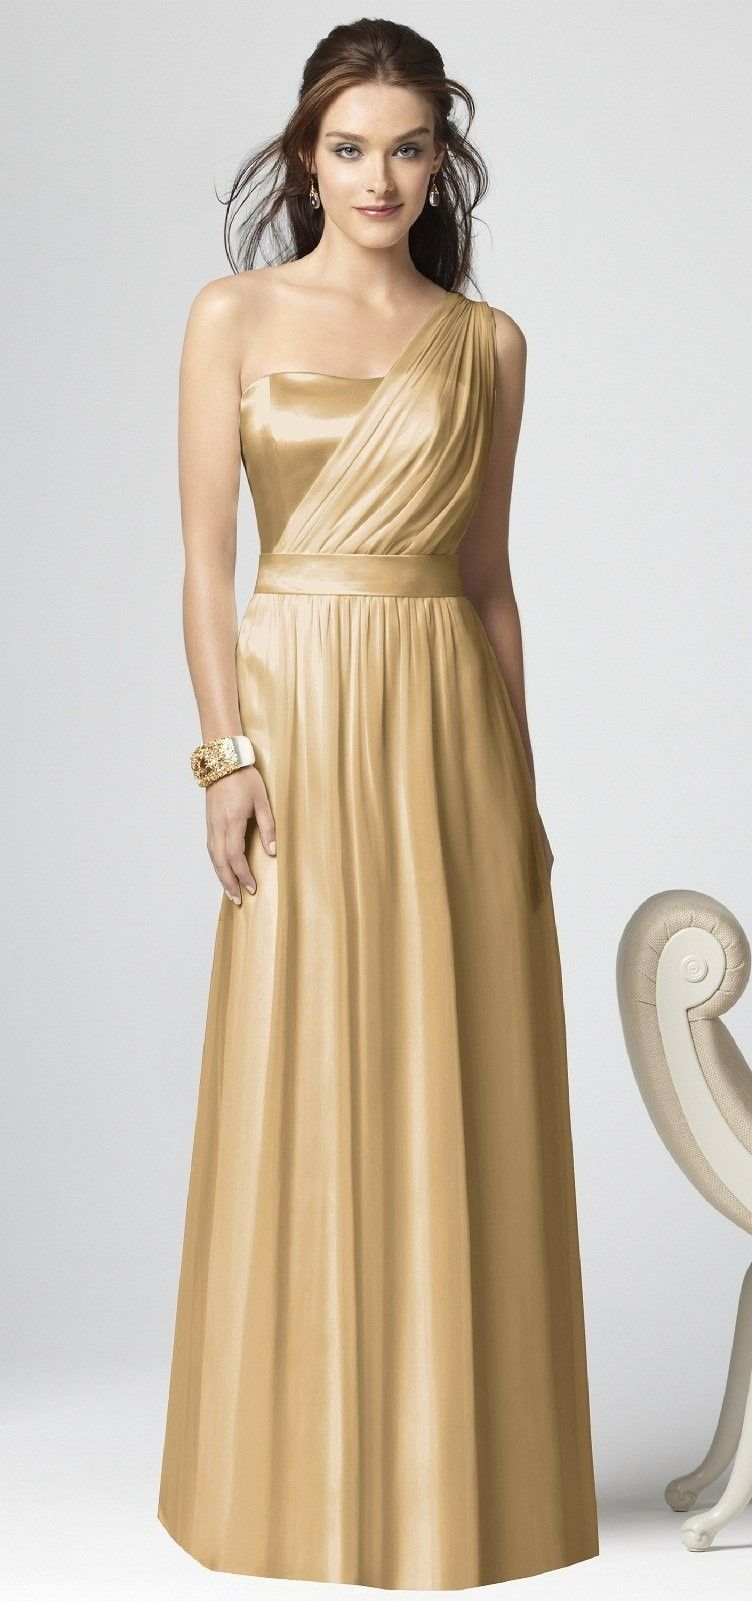 29++ White and gold wedding bridesmaid dresses information